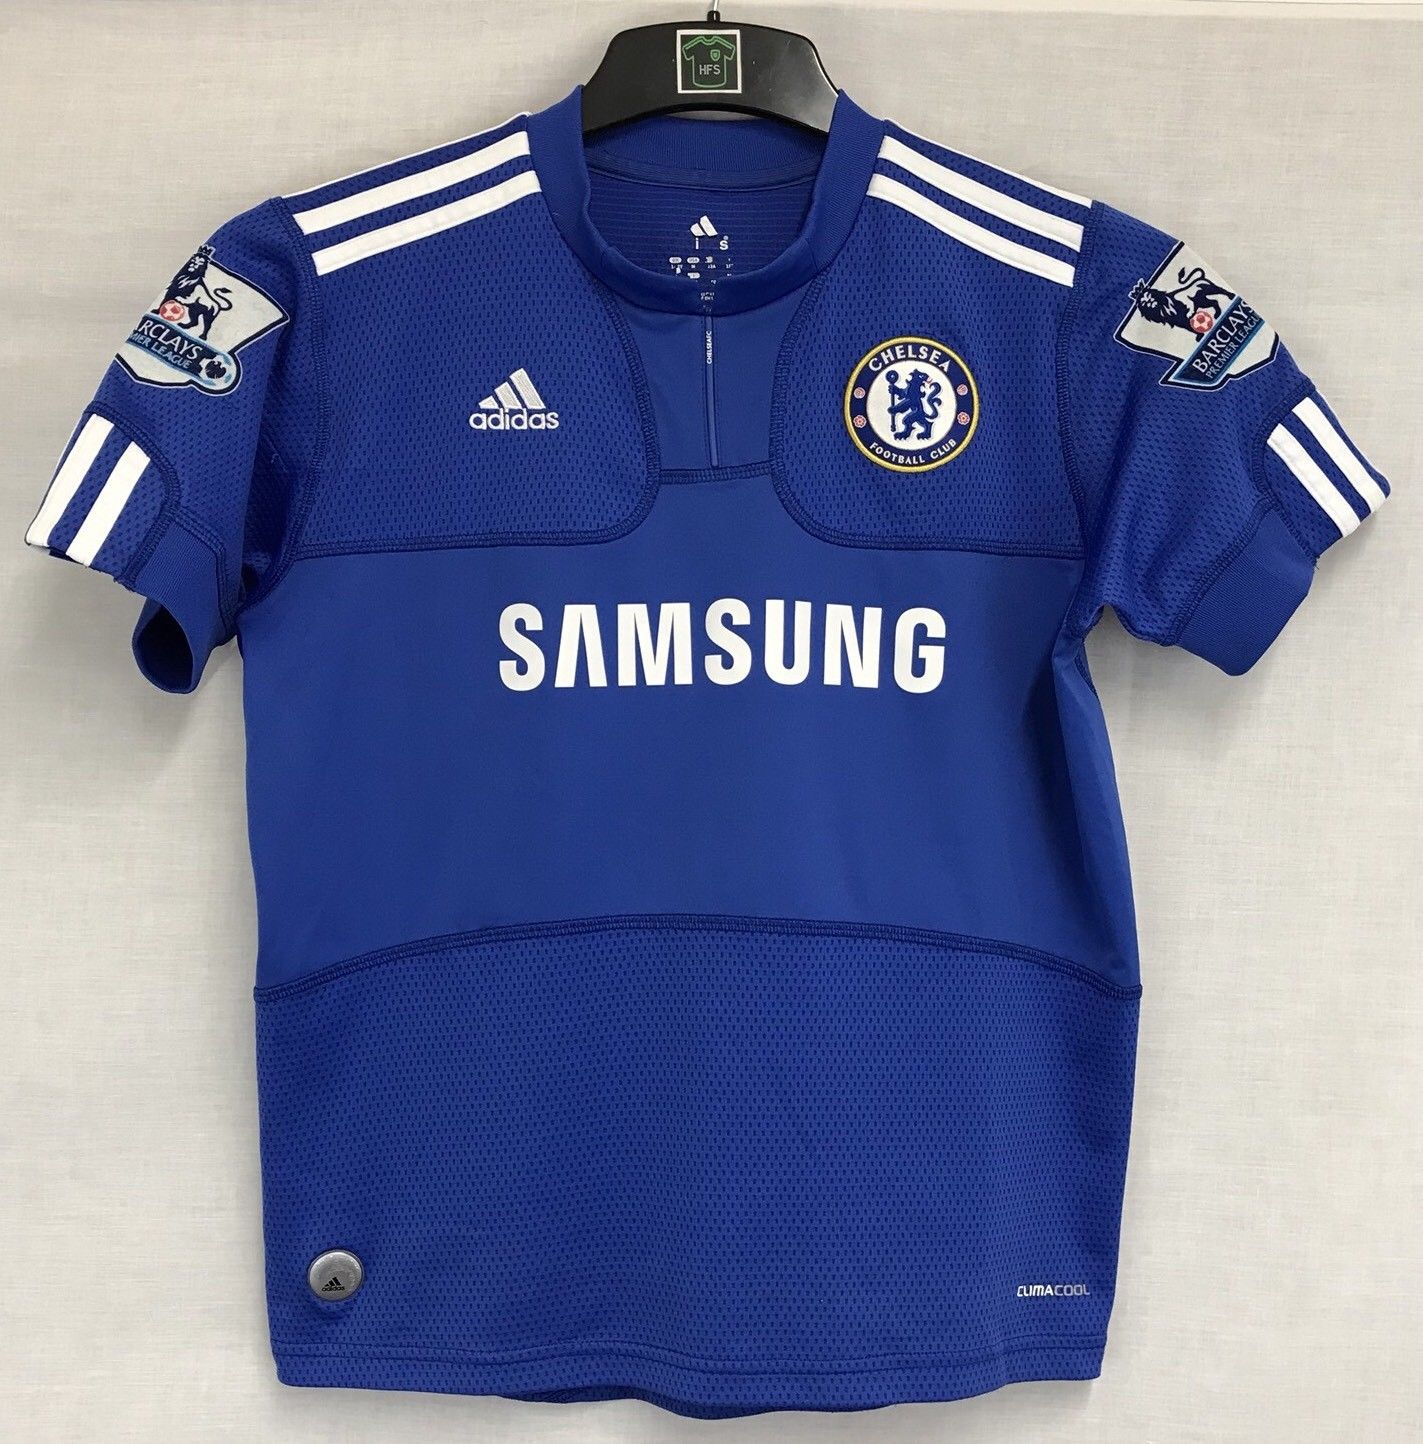 Chelsea Frank Lampard 8 Football Shirt 2009 10 Children s 11 12 Years  Adidas. 🔍. instock 5bb311734